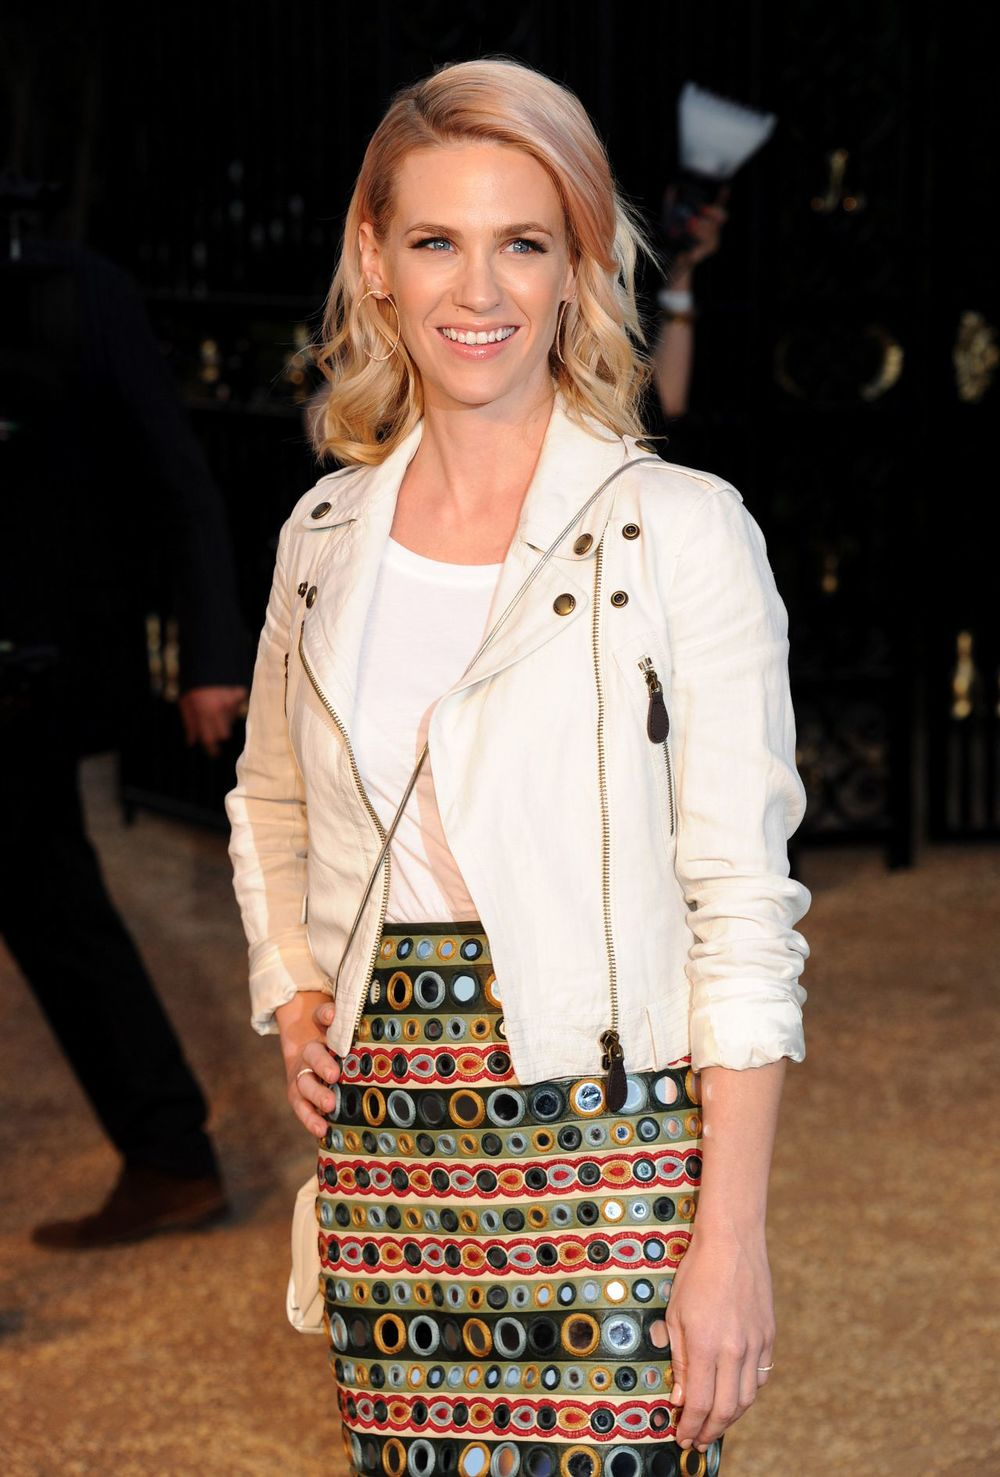 january-jones-burberry-s-london-in-los-angeles-party-in-los-angeles-april-2015_1.jpg